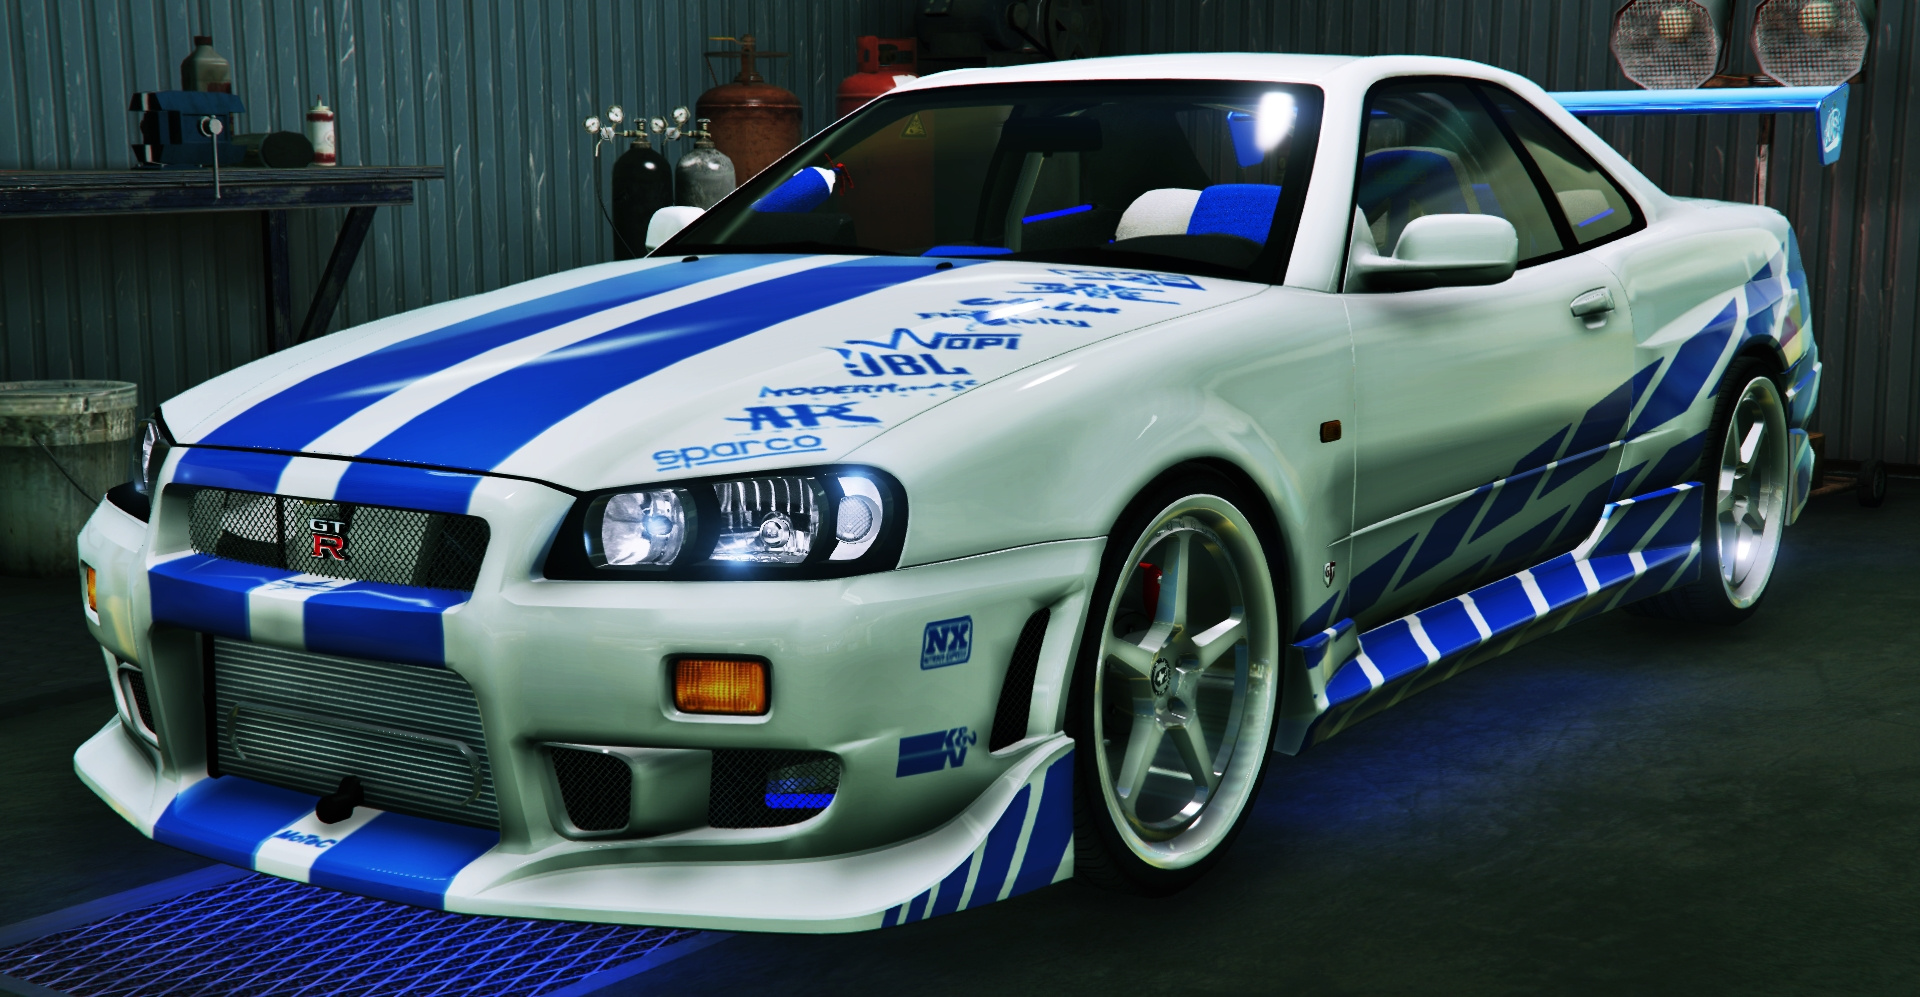 2f2f Edition Nissan Skyline Gt R34 on 95 eclipse gt